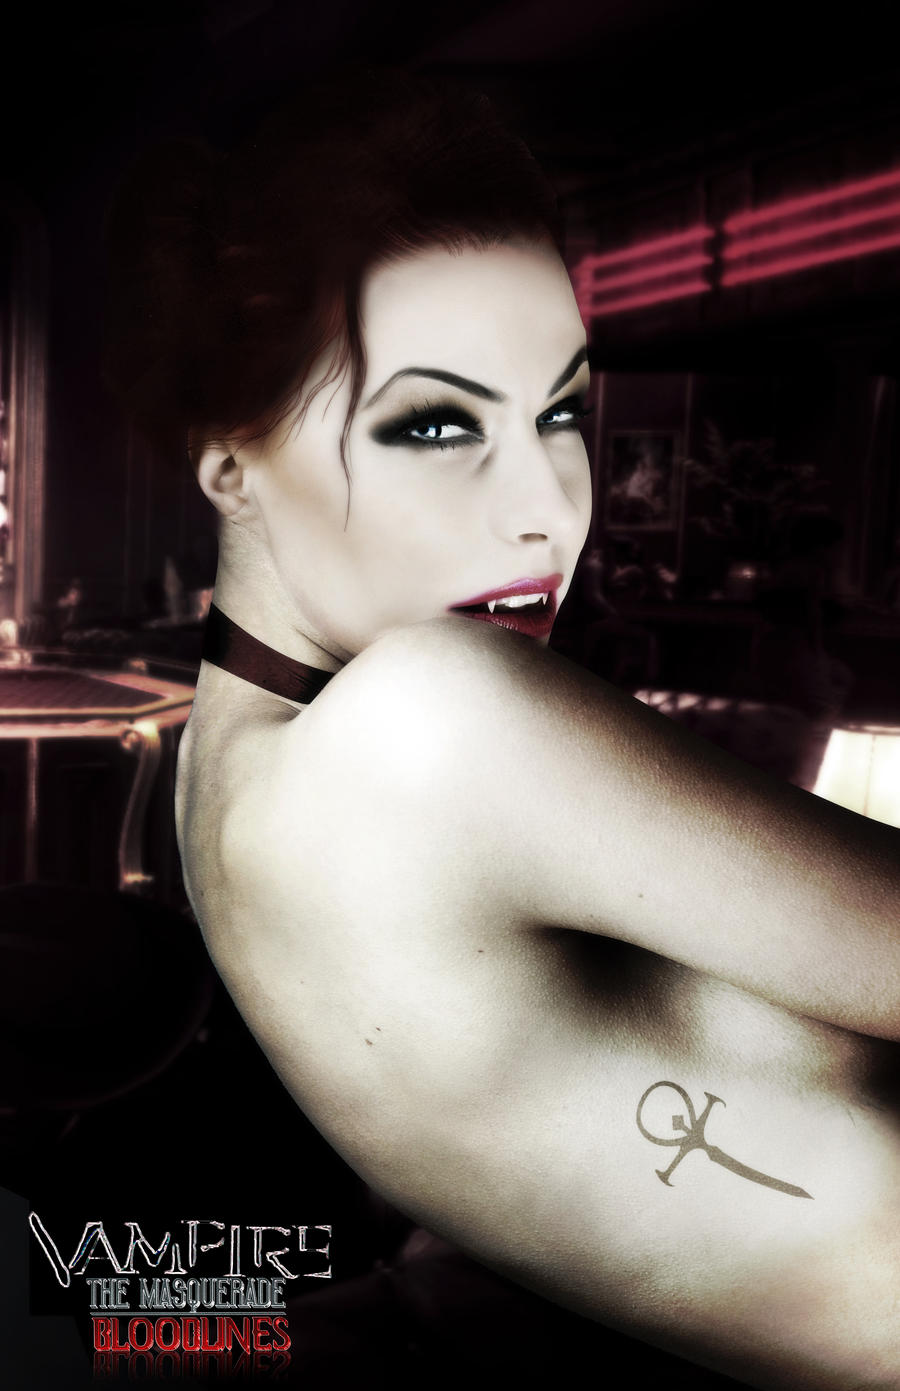 Anlisis Vampire,the masquerade:bloodlines - Forocete